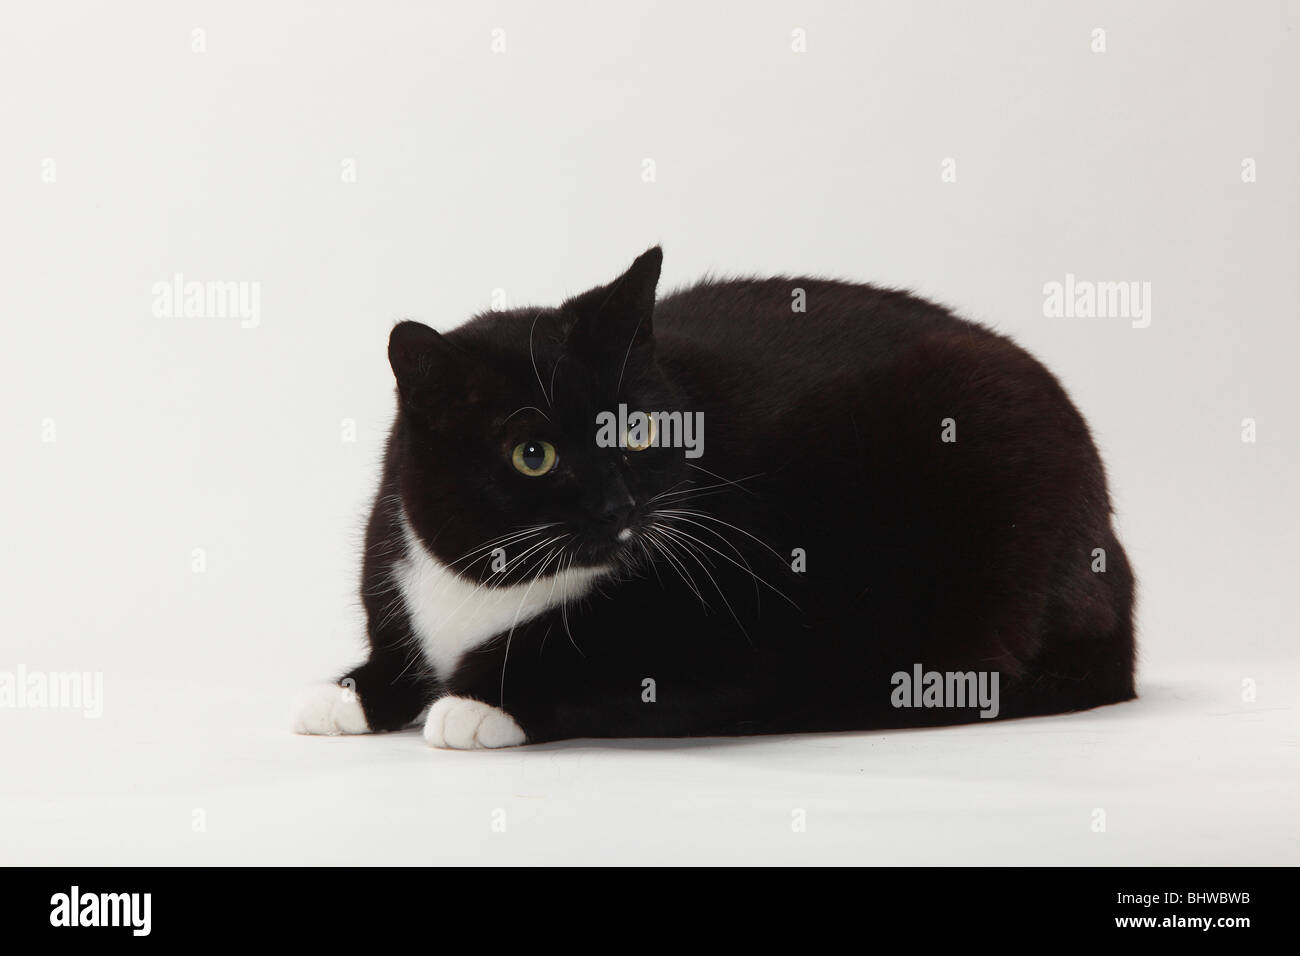 Domestic Cat, too fat / overweight - Stock Image